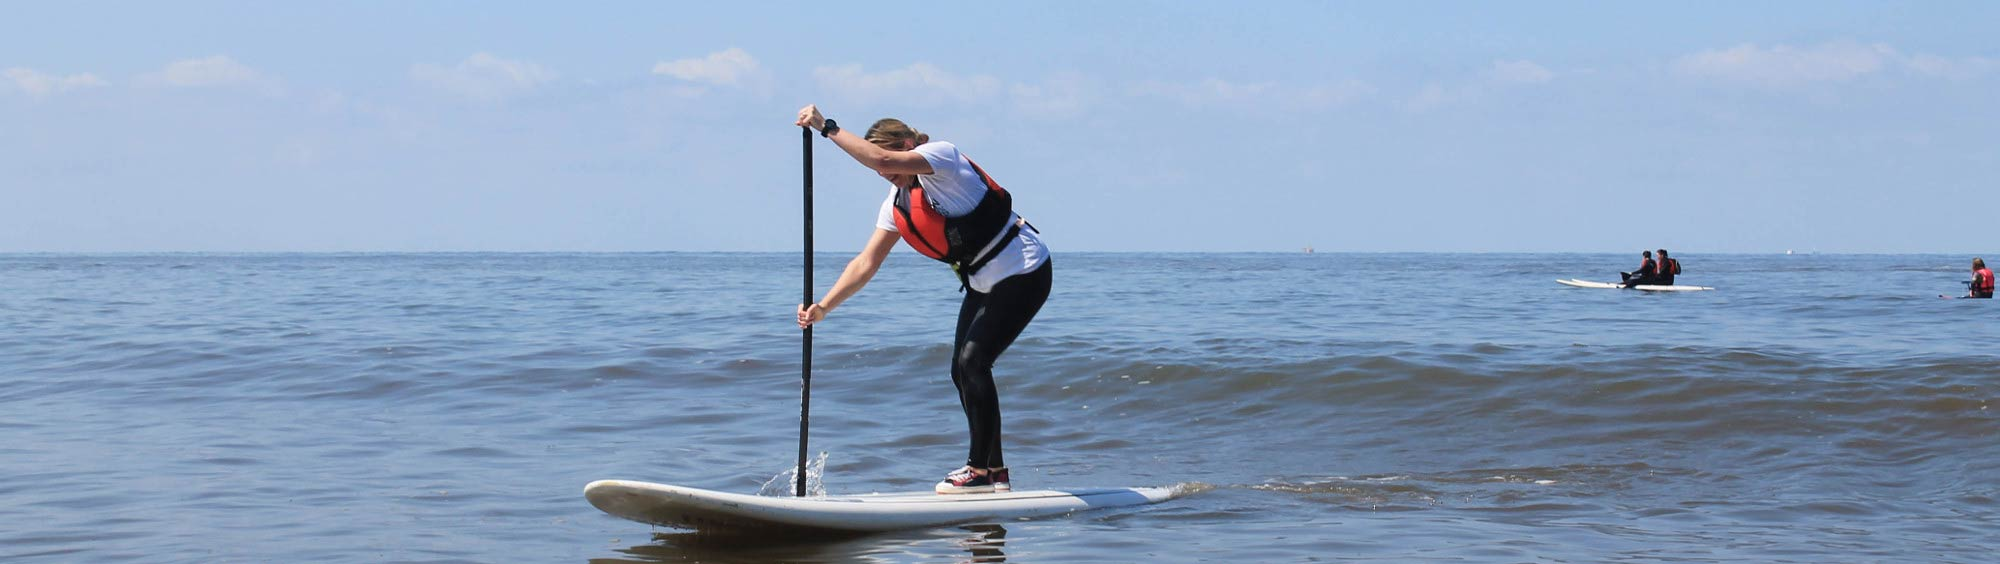 Paddleboard Progression Session